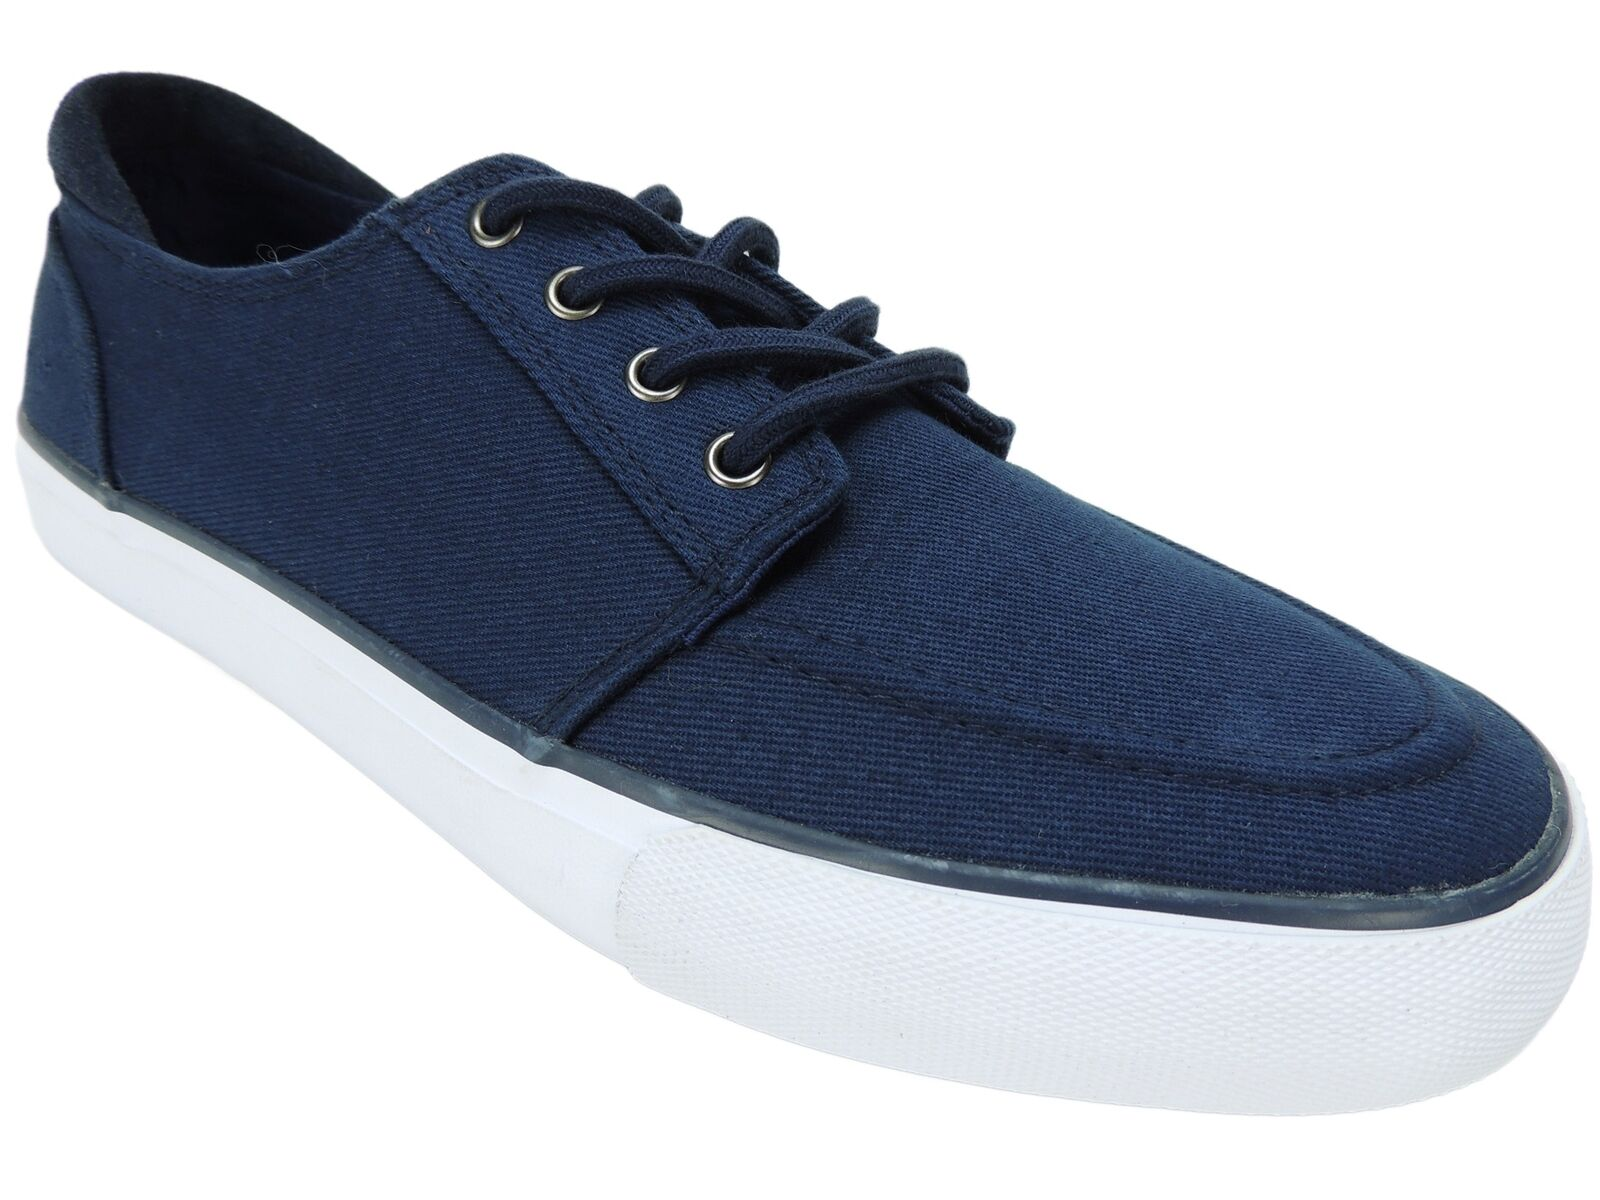 Marc New York by Andrew Mark Men's Pembroke Oxfords Navy bluee Canvas Size 9.5 M